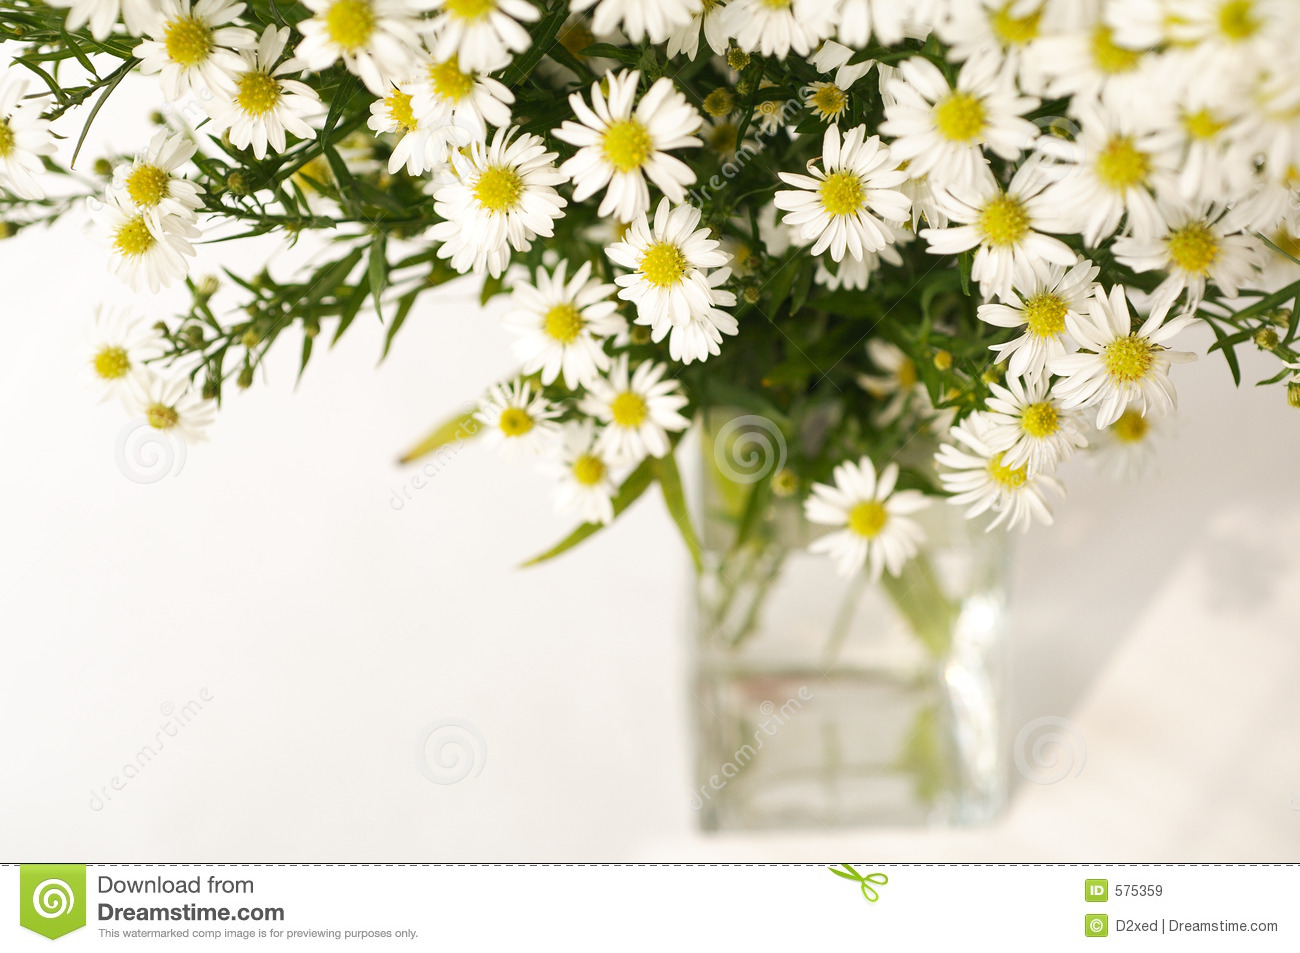 White daisy in a vase stock image image of florist holiday 575359 white daisy in a vase reviewsmspy